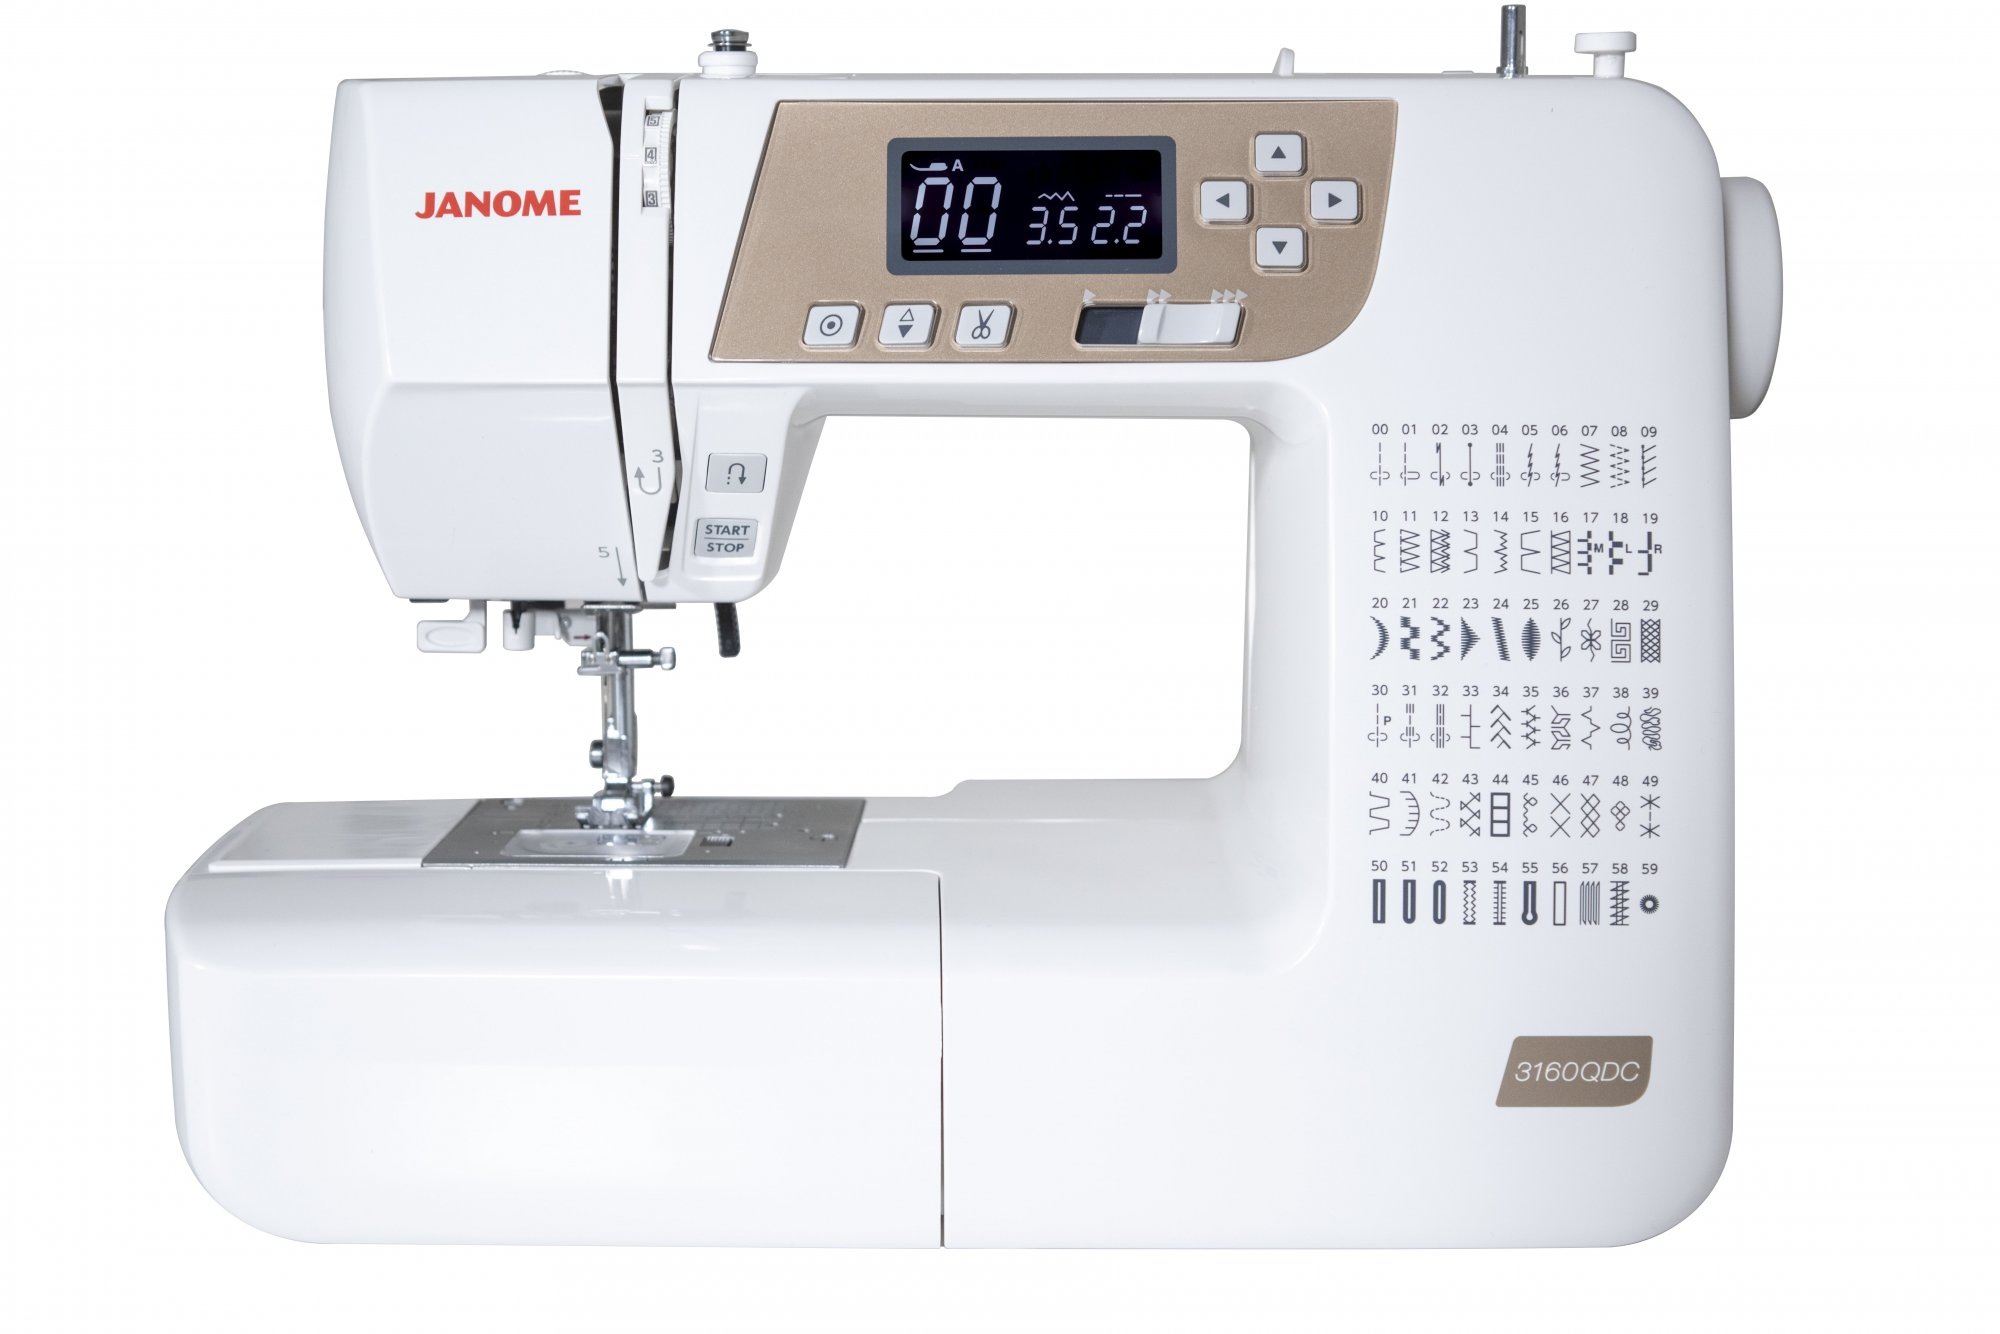 JANOME 3160 QDC-T Electronic Full Feature Sewing Machine